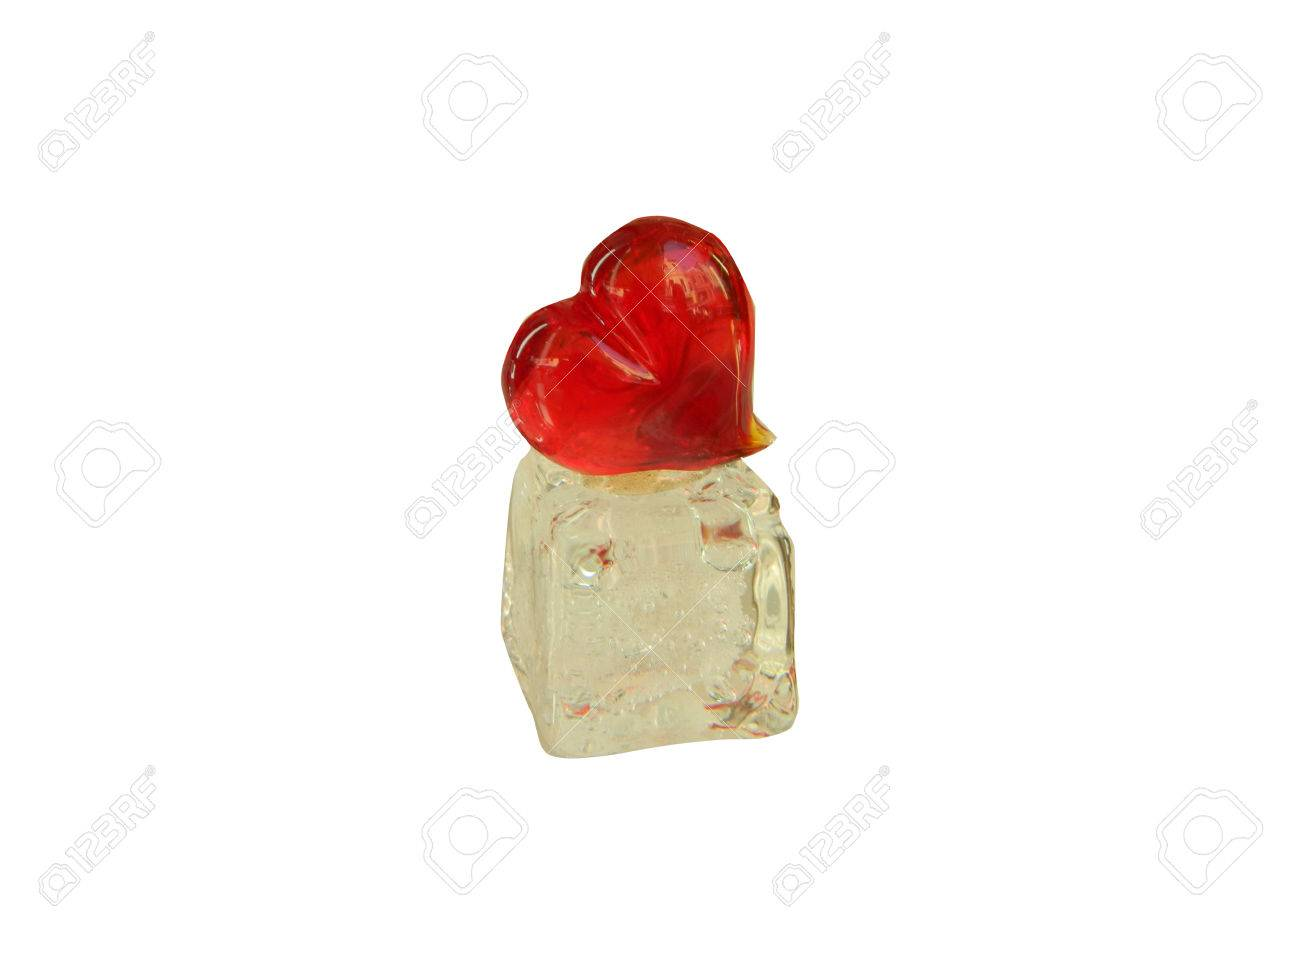 Valentines day heart made of Murano glass, on white, ice like support,  isolated on white background. Stock Photo - 51795995